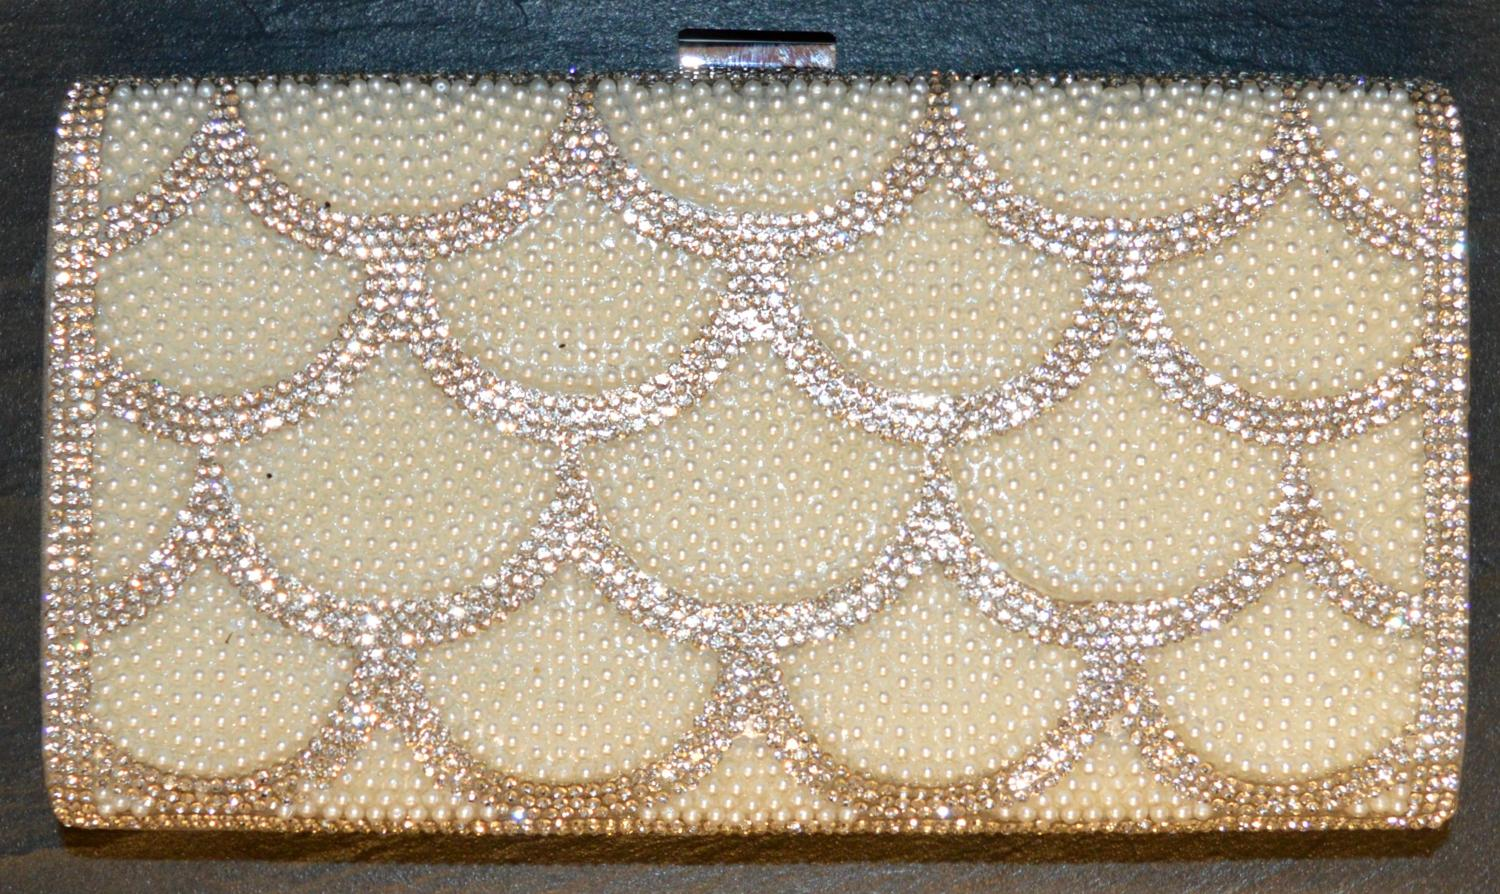 Diamante and Pearl Shell Style Patterned Clutch Bag